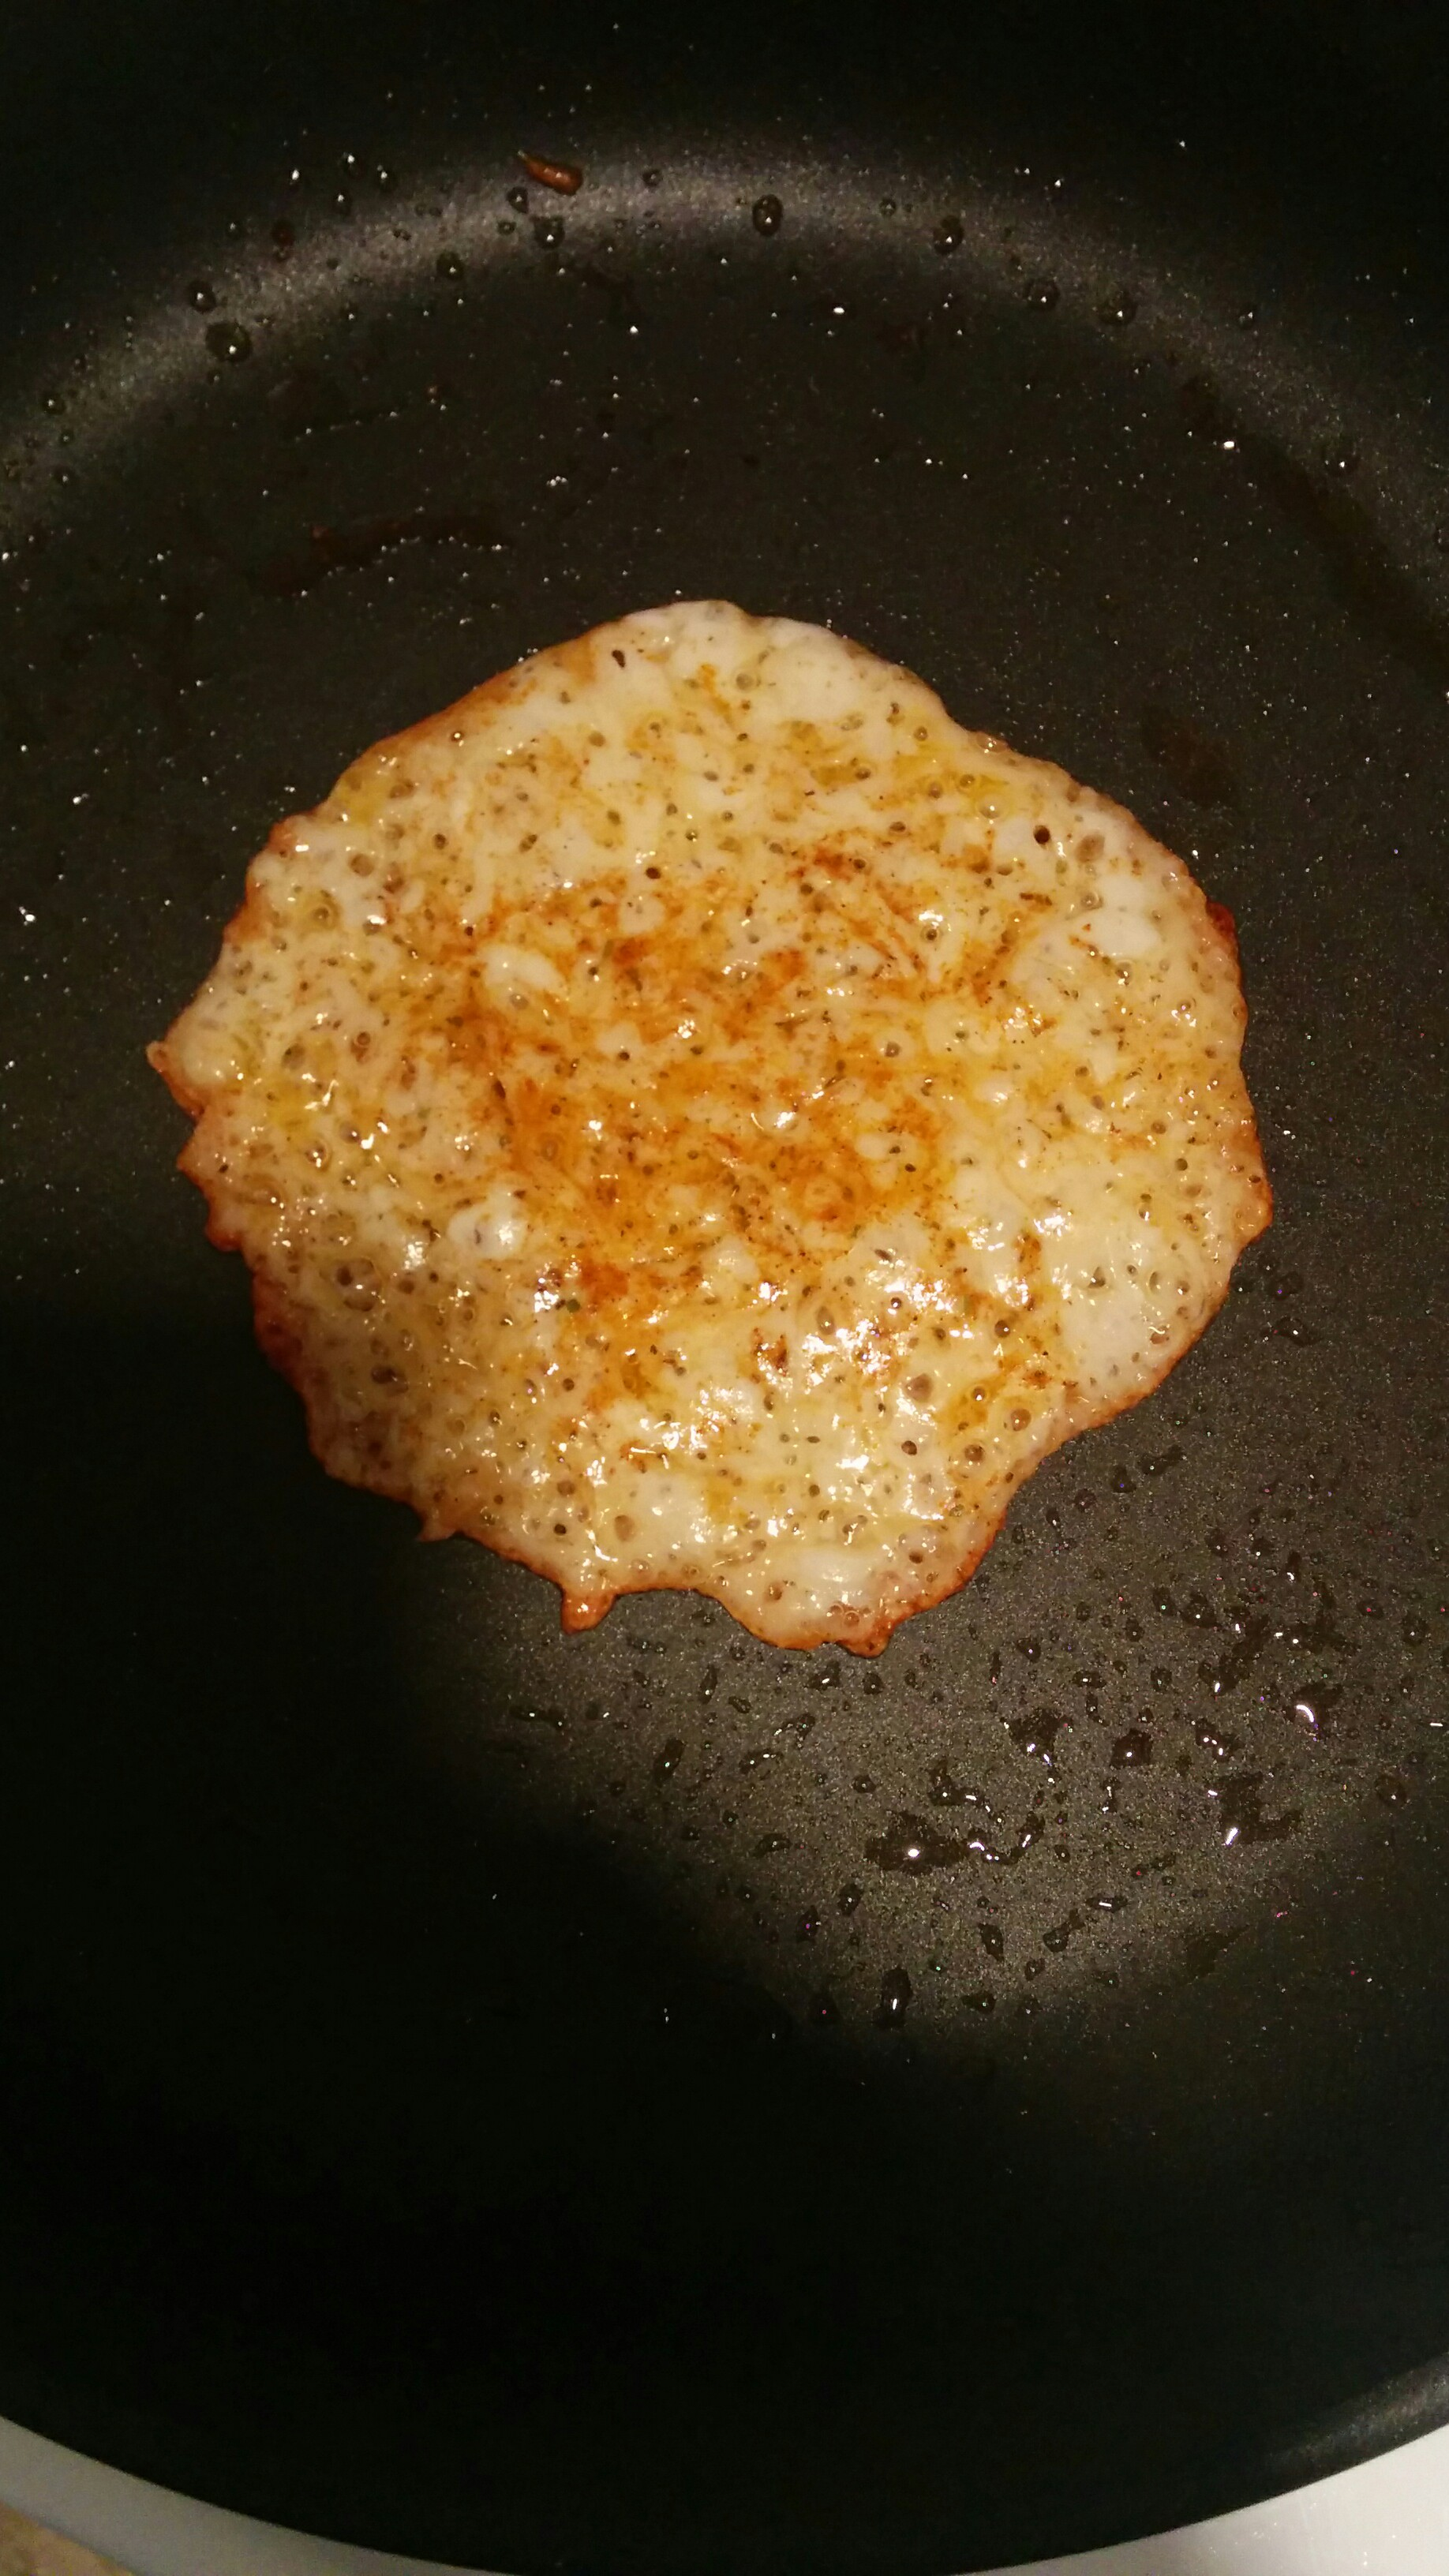 frying up some cheese crisps